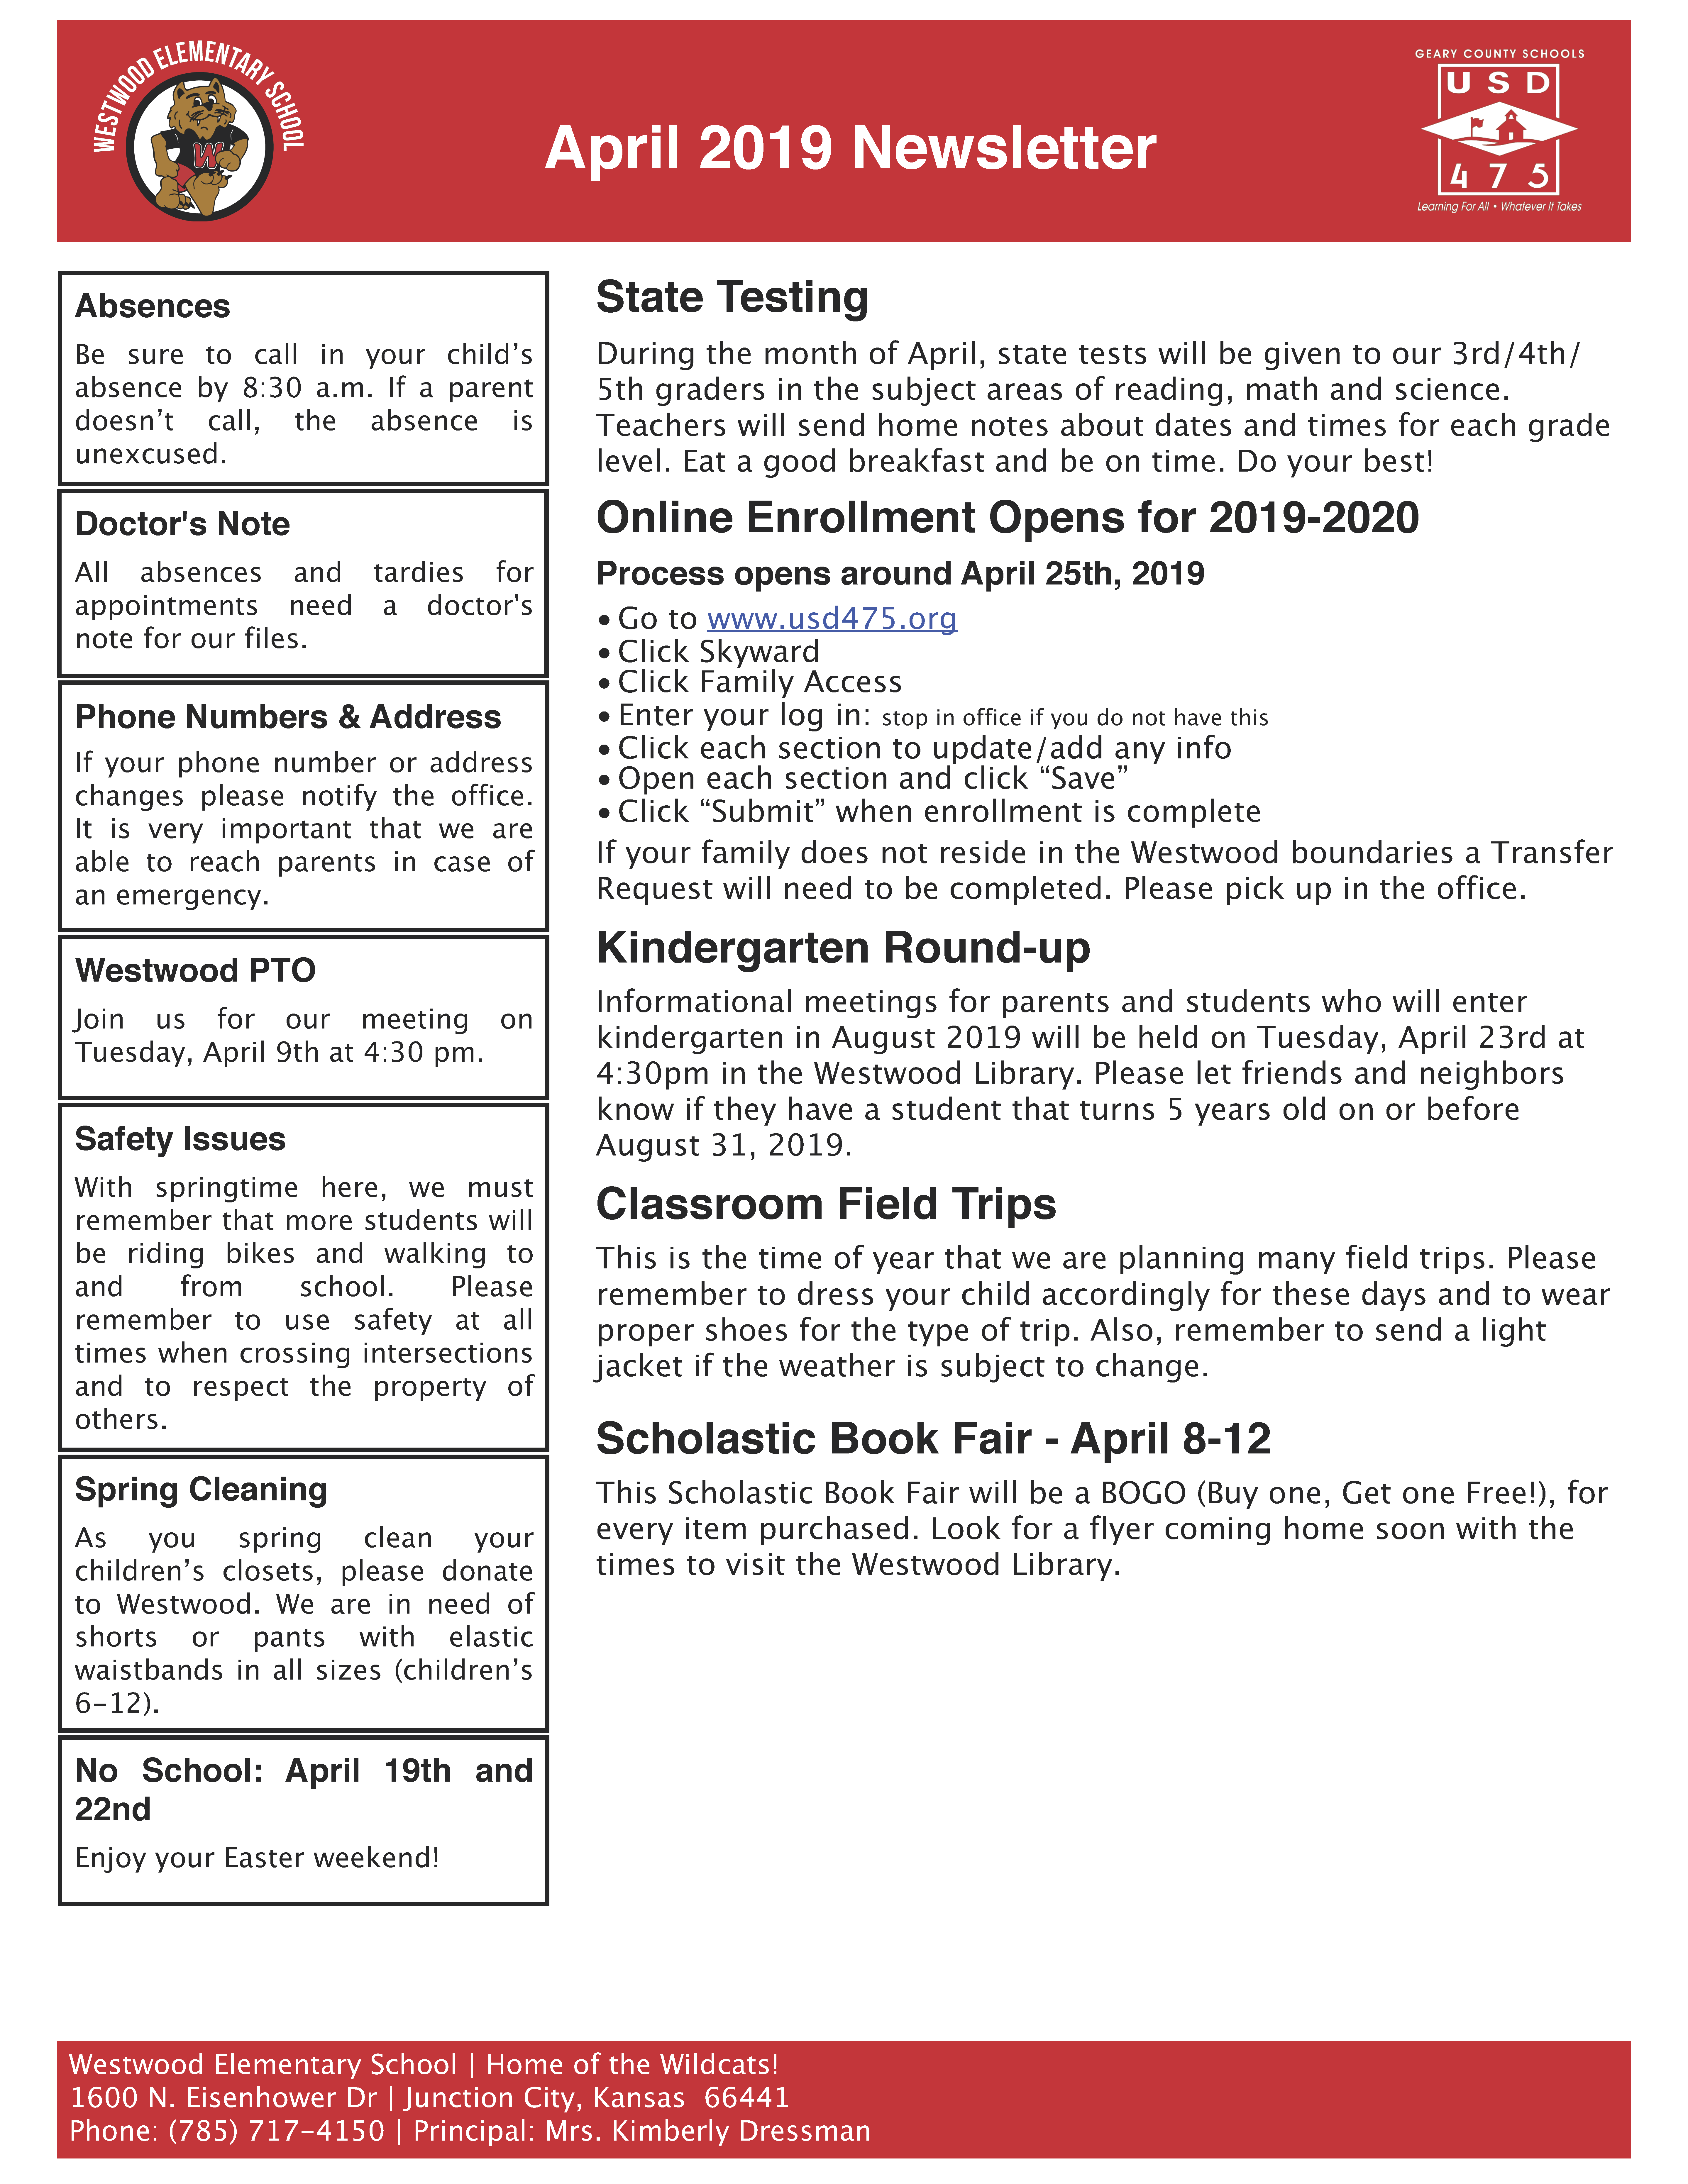 Image of Westwood Elementary's April 2019 Newsletter